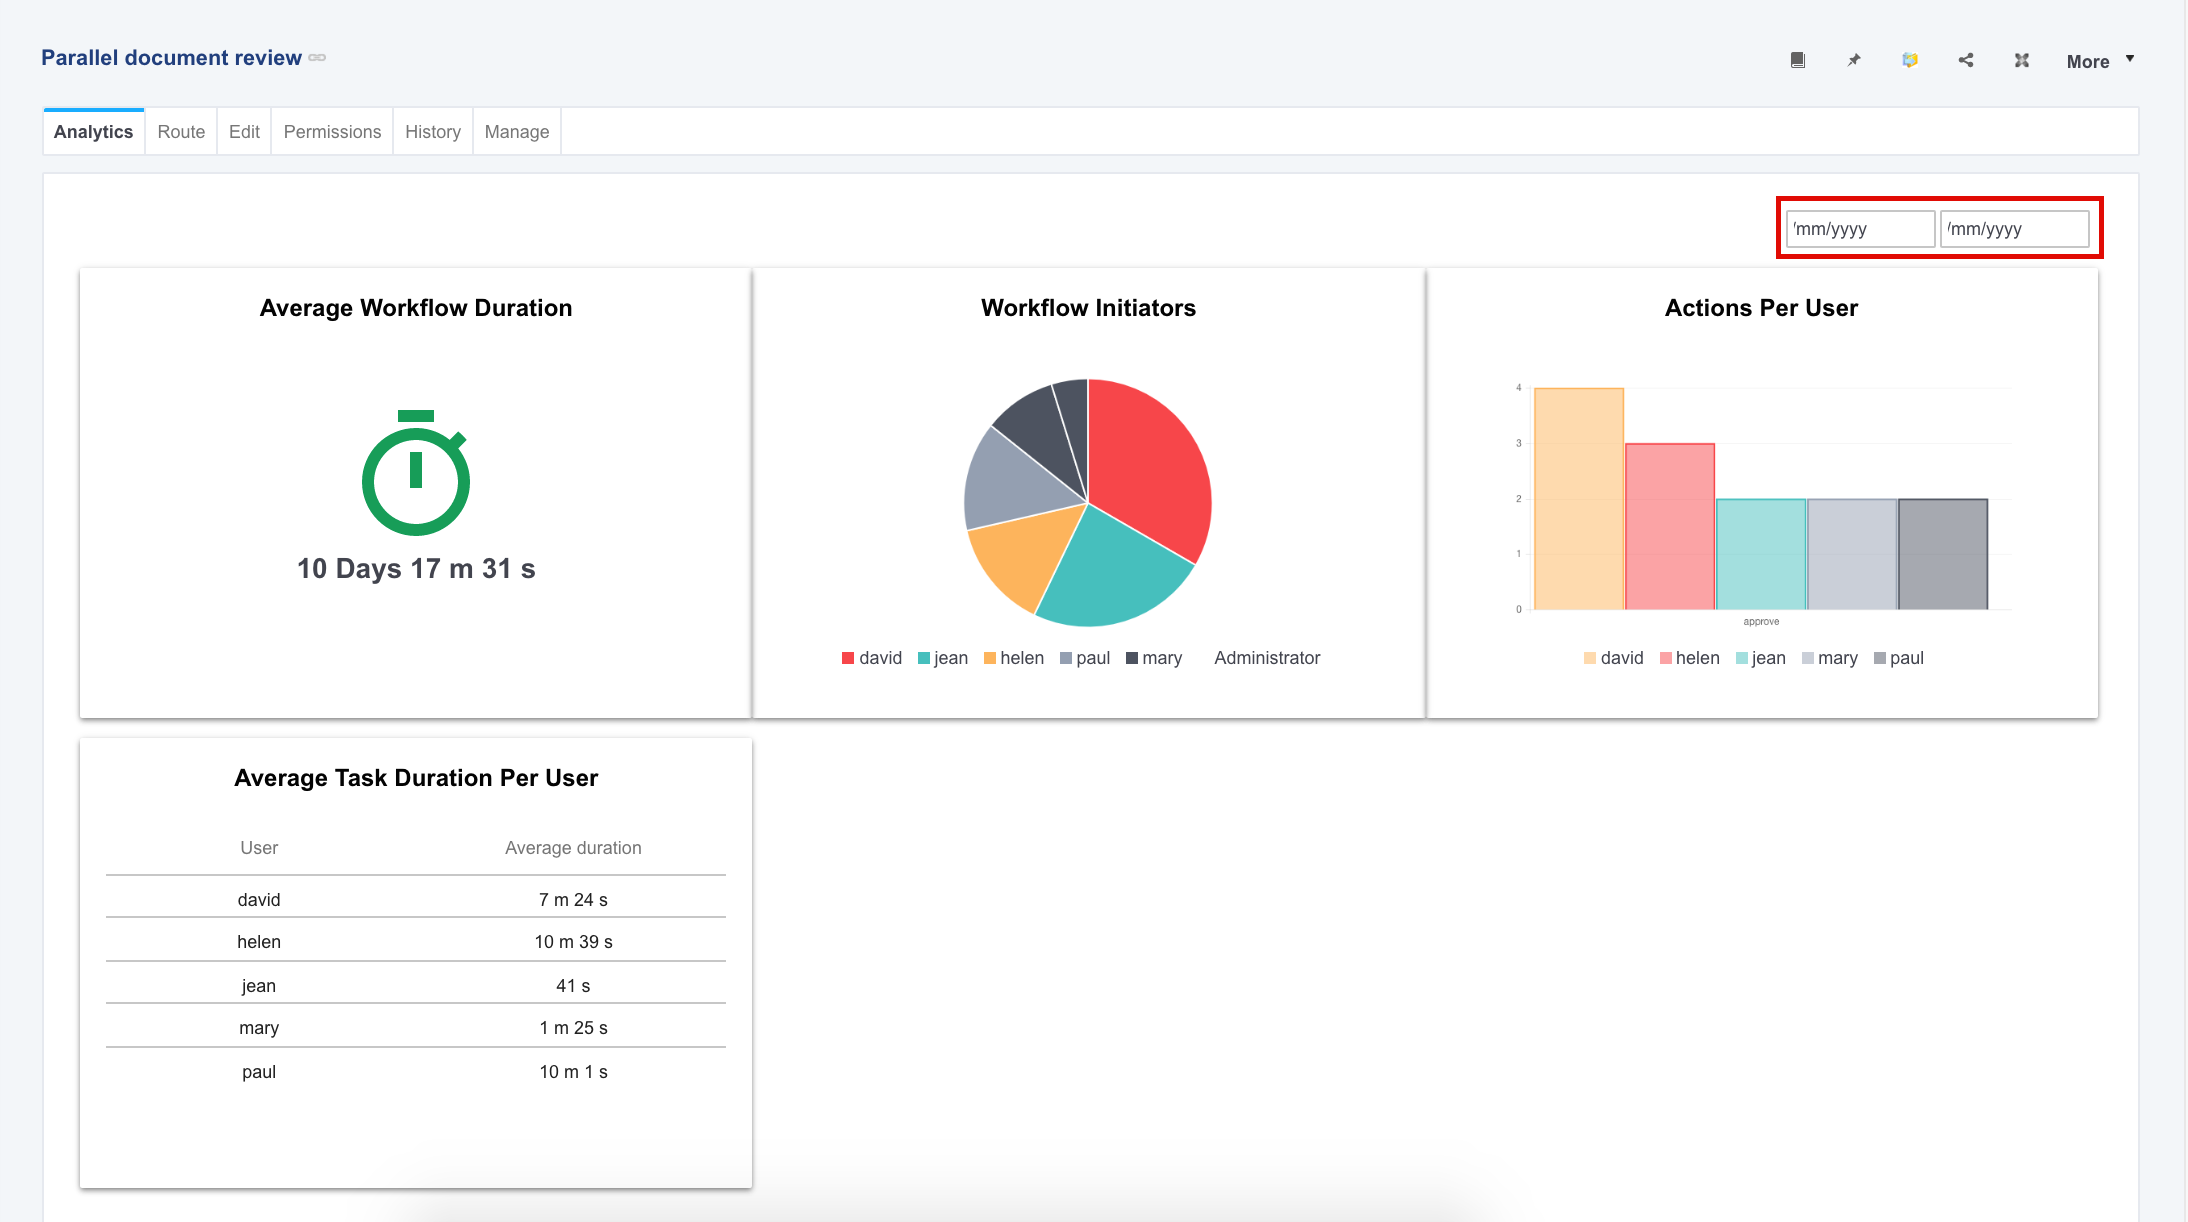 Monitor your Data and Workflows with Data Visualization and Analytics in Nuxeo